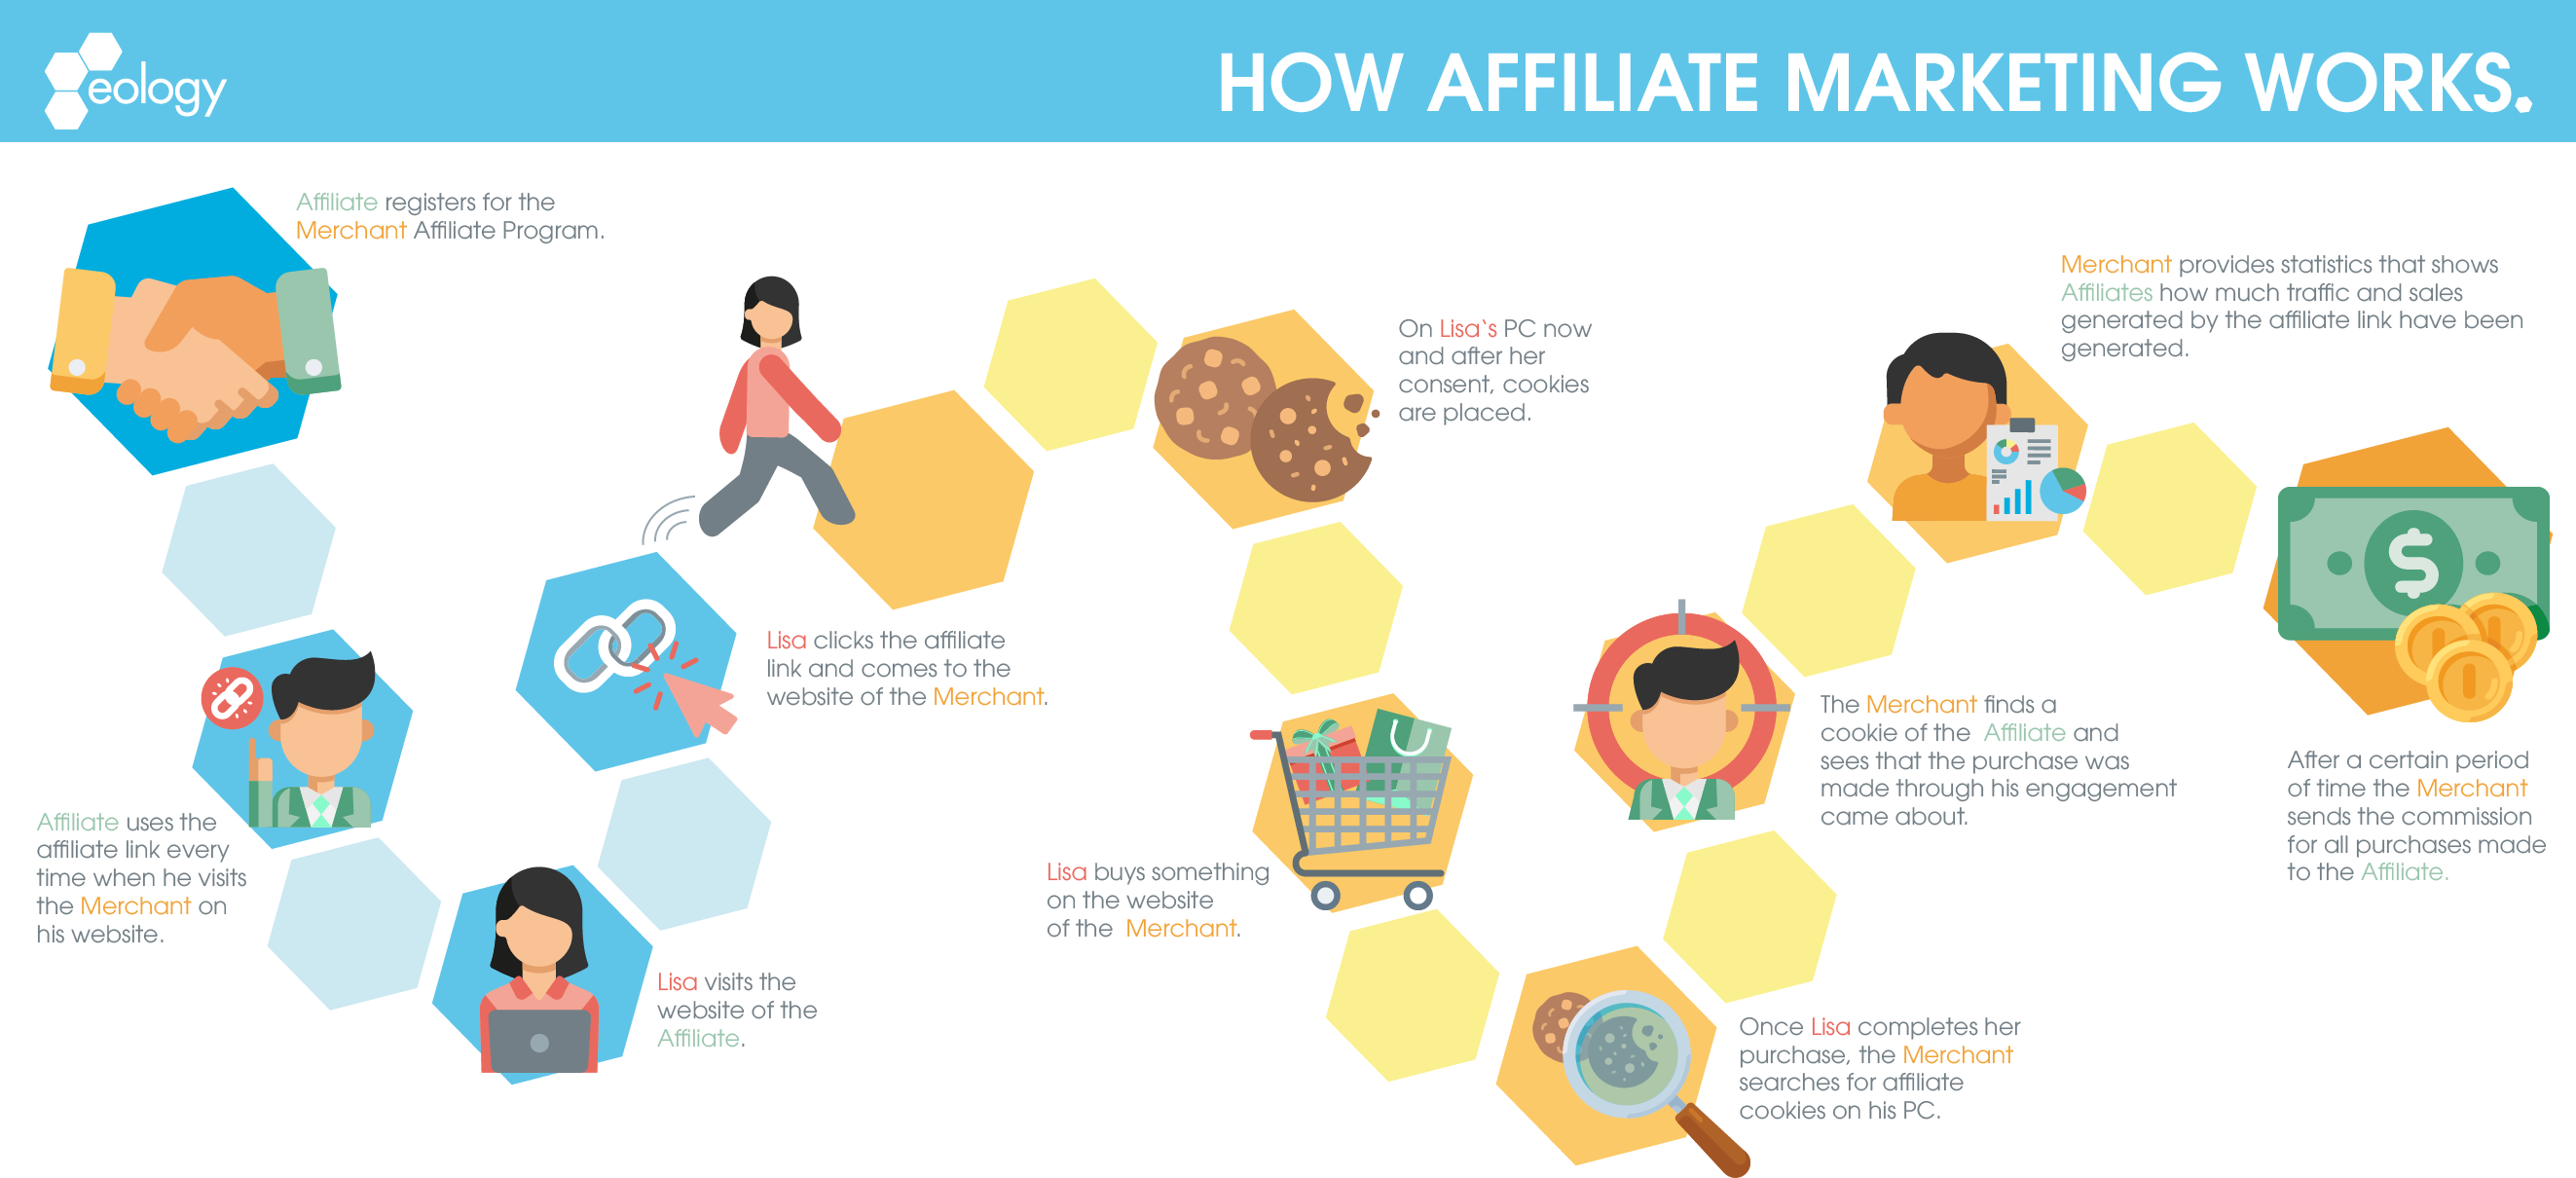 How affiliate marketing works explained step by step including signing a contract, using the affiliate link, customer purchase and subsequent commission payments.